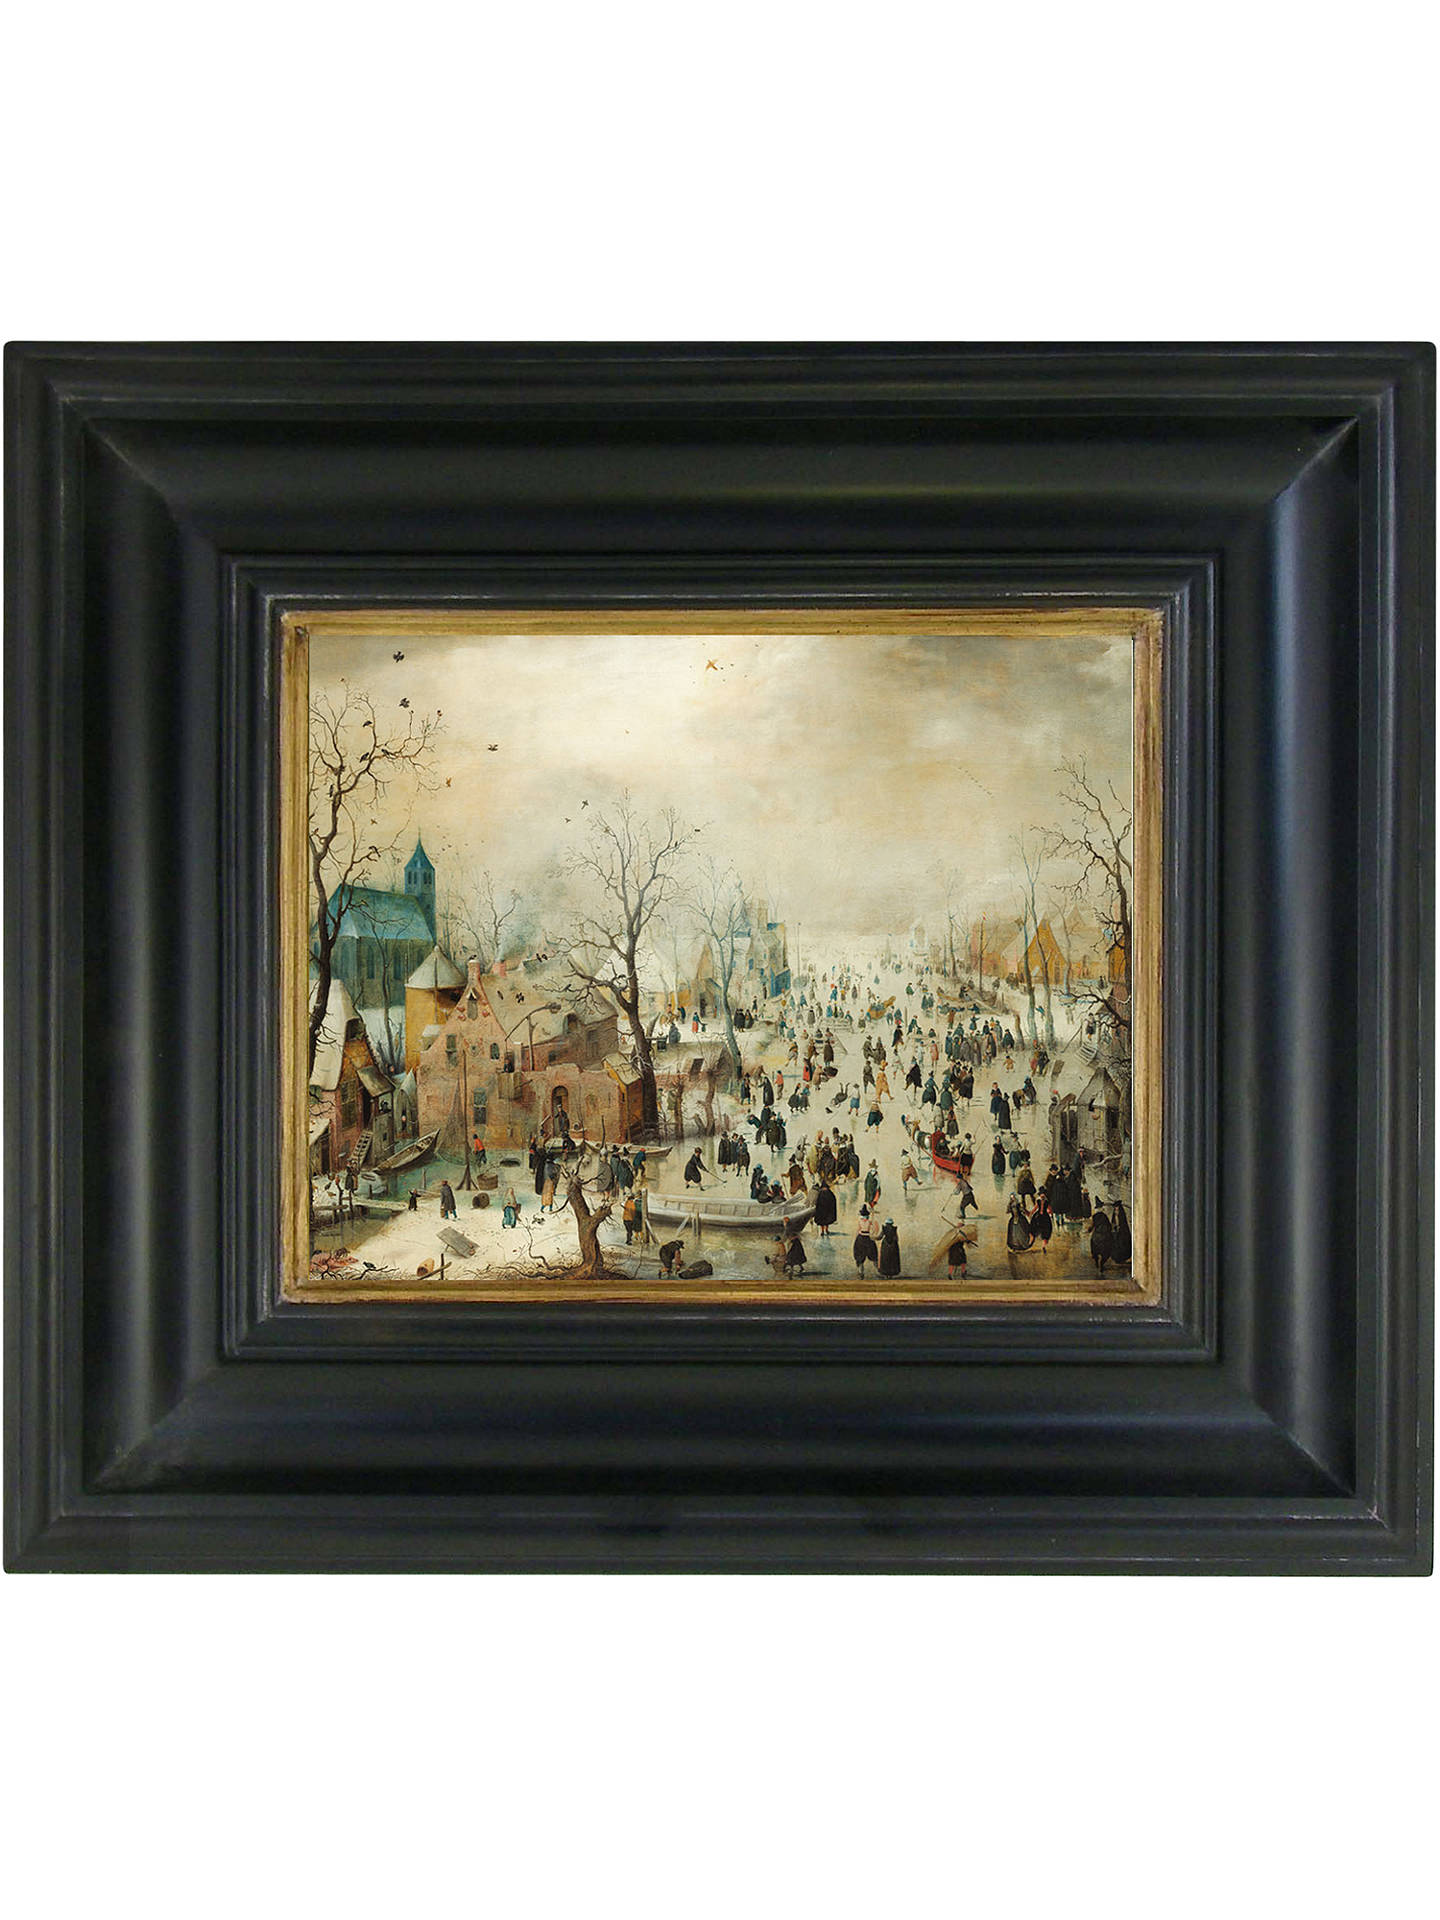 BuyRijksmuseum, Hendrick Avercamp - Winter Landscape with Skaters Framed Print, 36 x 42cm Online at johnlewis.com